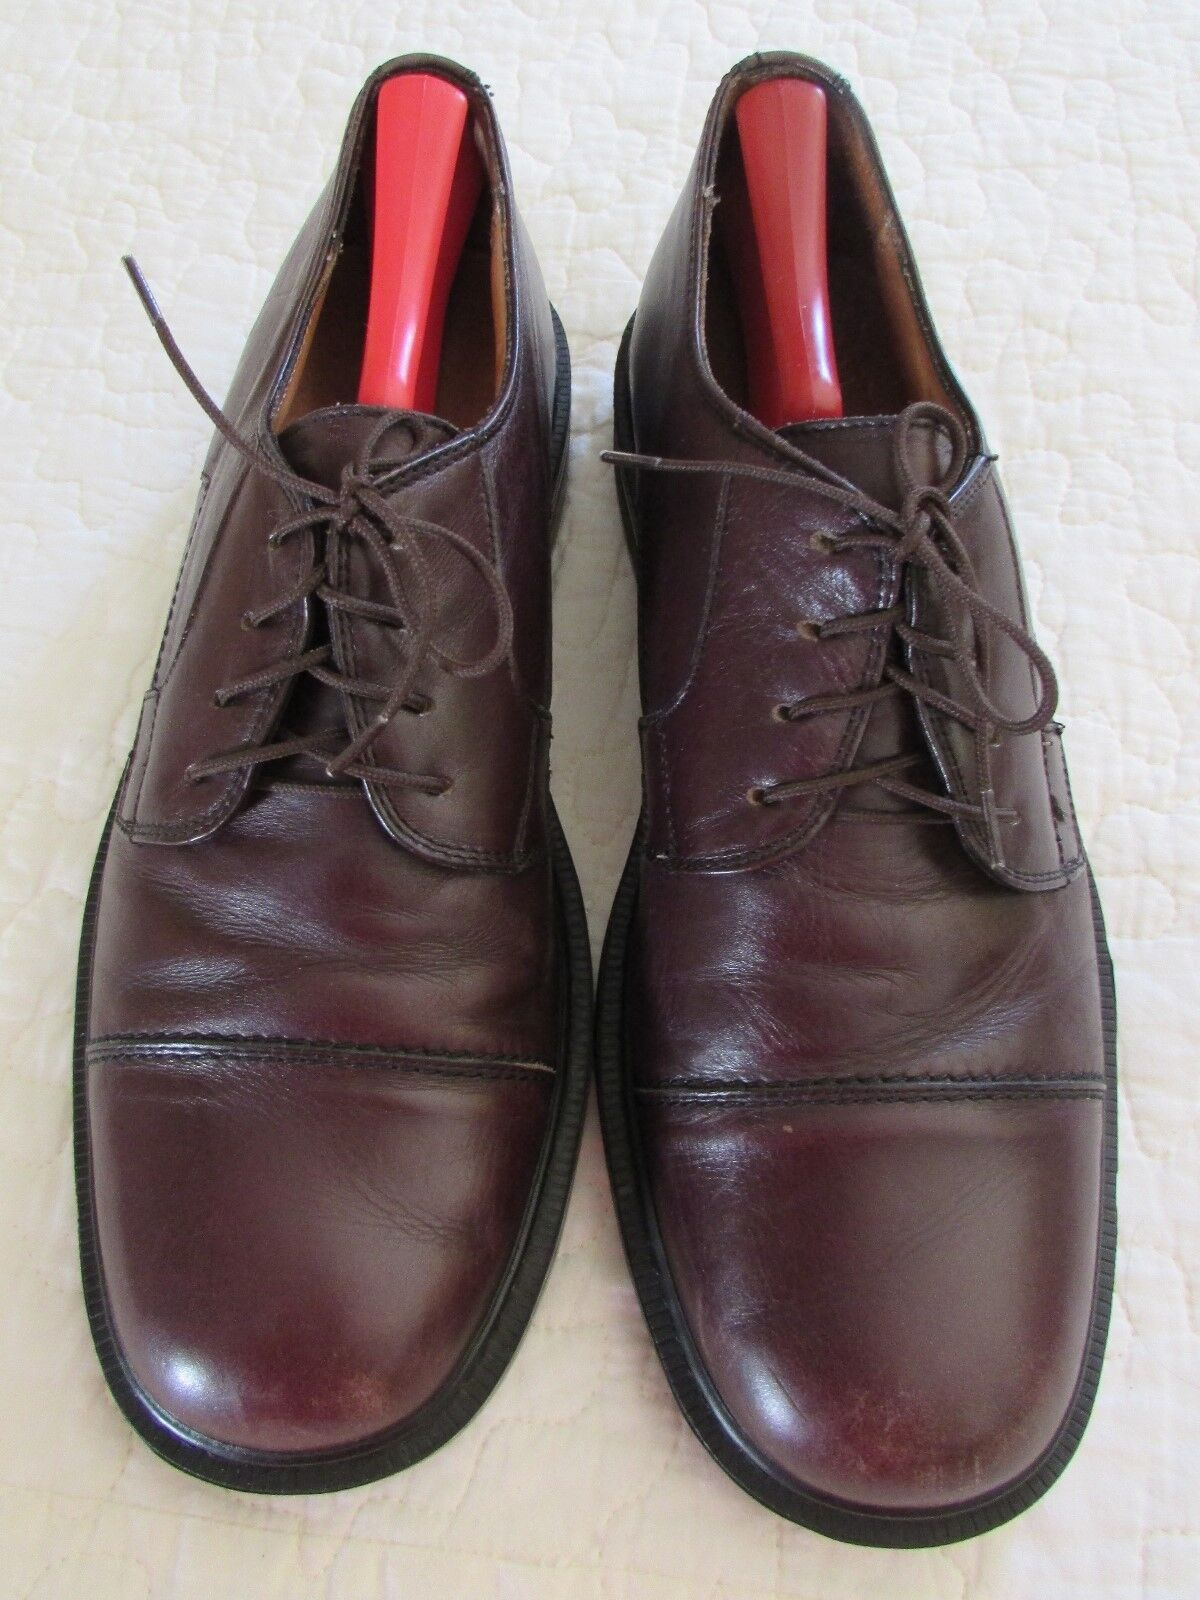 CLARKS Cap Toe Dress Cordovan Leather Comfort Oxford Dress Toe Shoes 11M Italy 35526 ff12ac